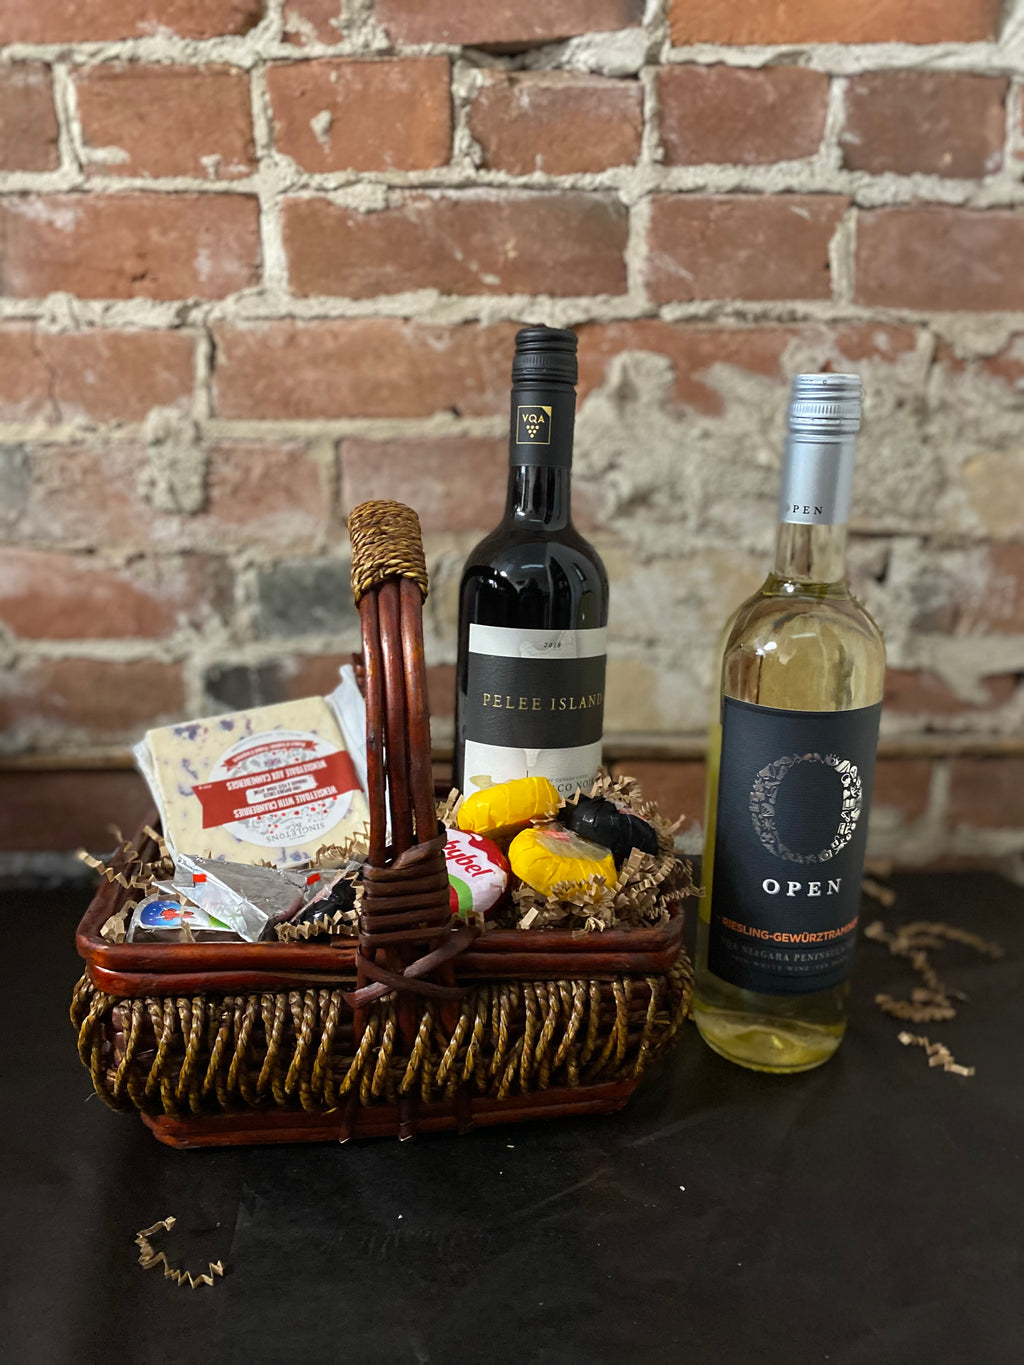 Jessie St Wine & Cheese Basket